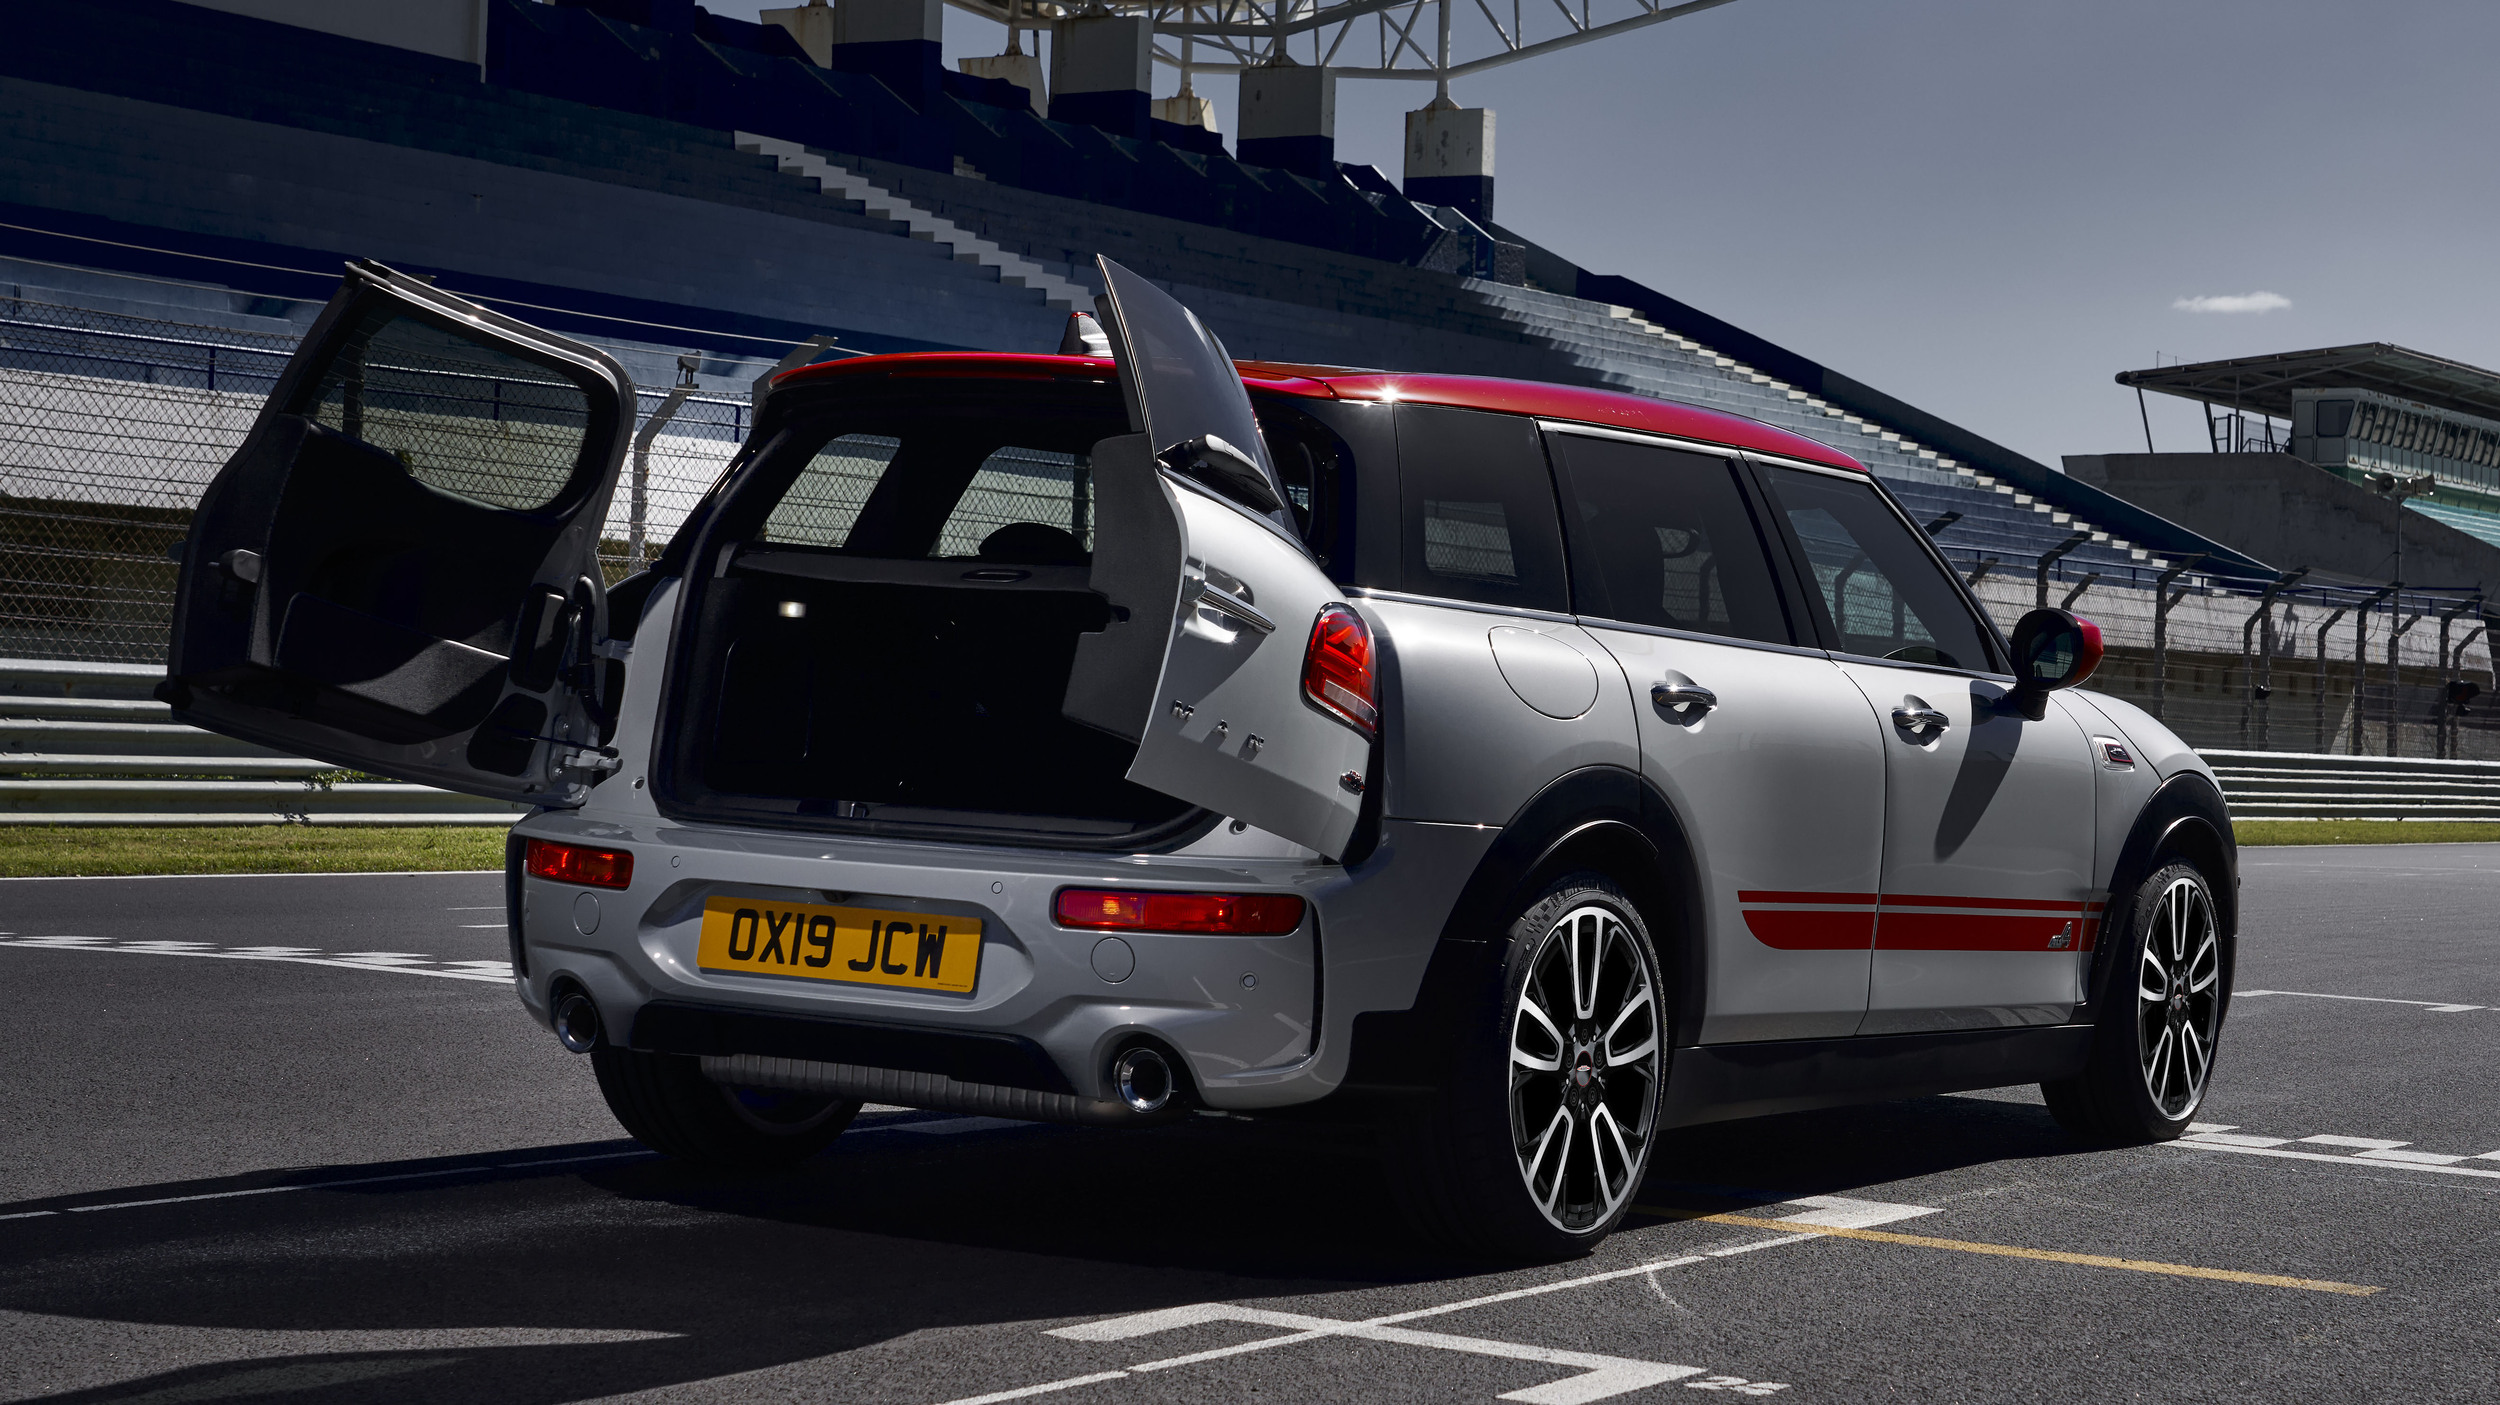 2020 Mini JCW Clubman, Countryman Make Over 300 Horsepower